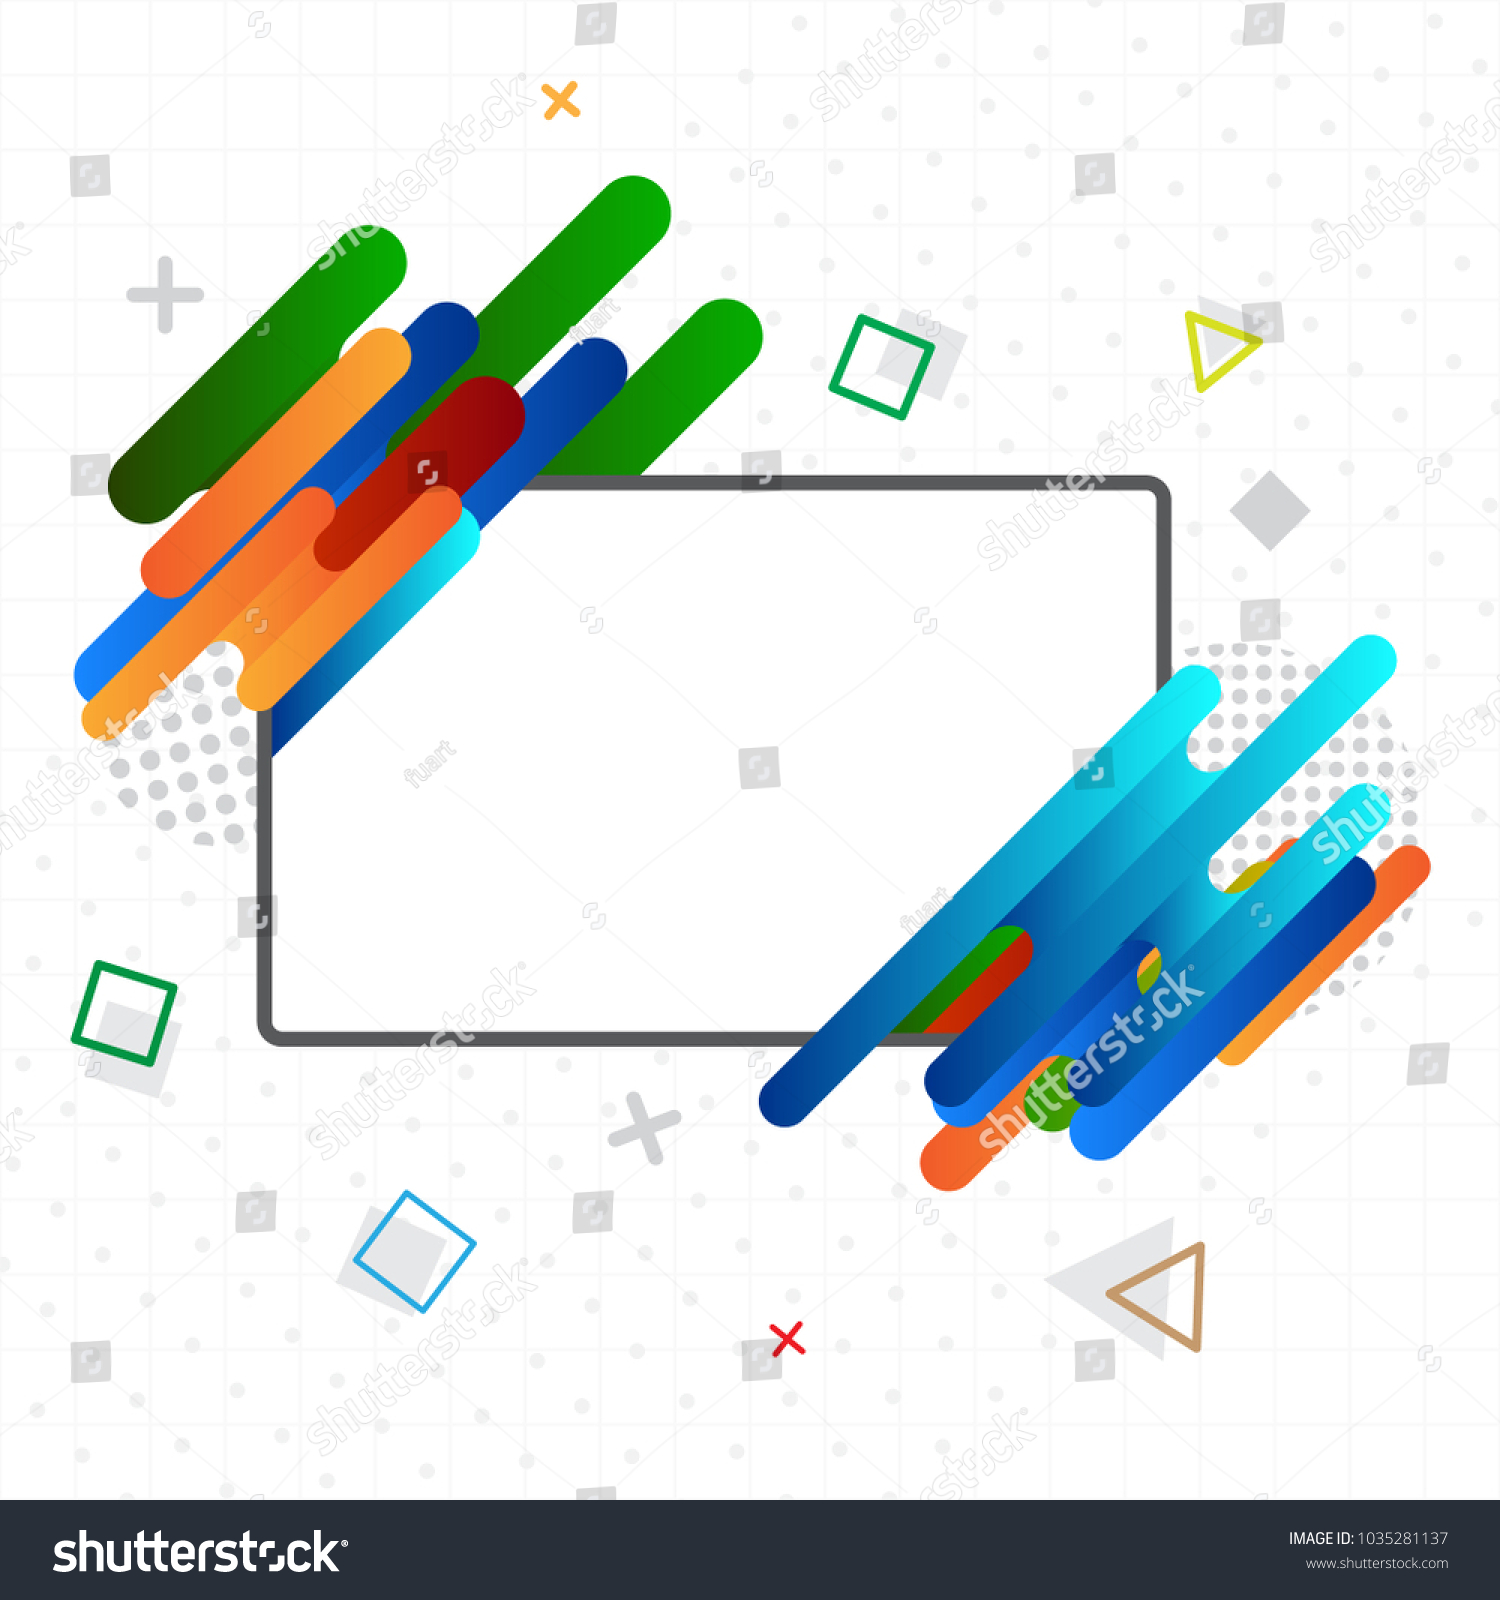 Greeting card memphis style use business stock vector 1035281137 greeting card with memphis style use for business banner or promotion sale kristyandbryce Image collections